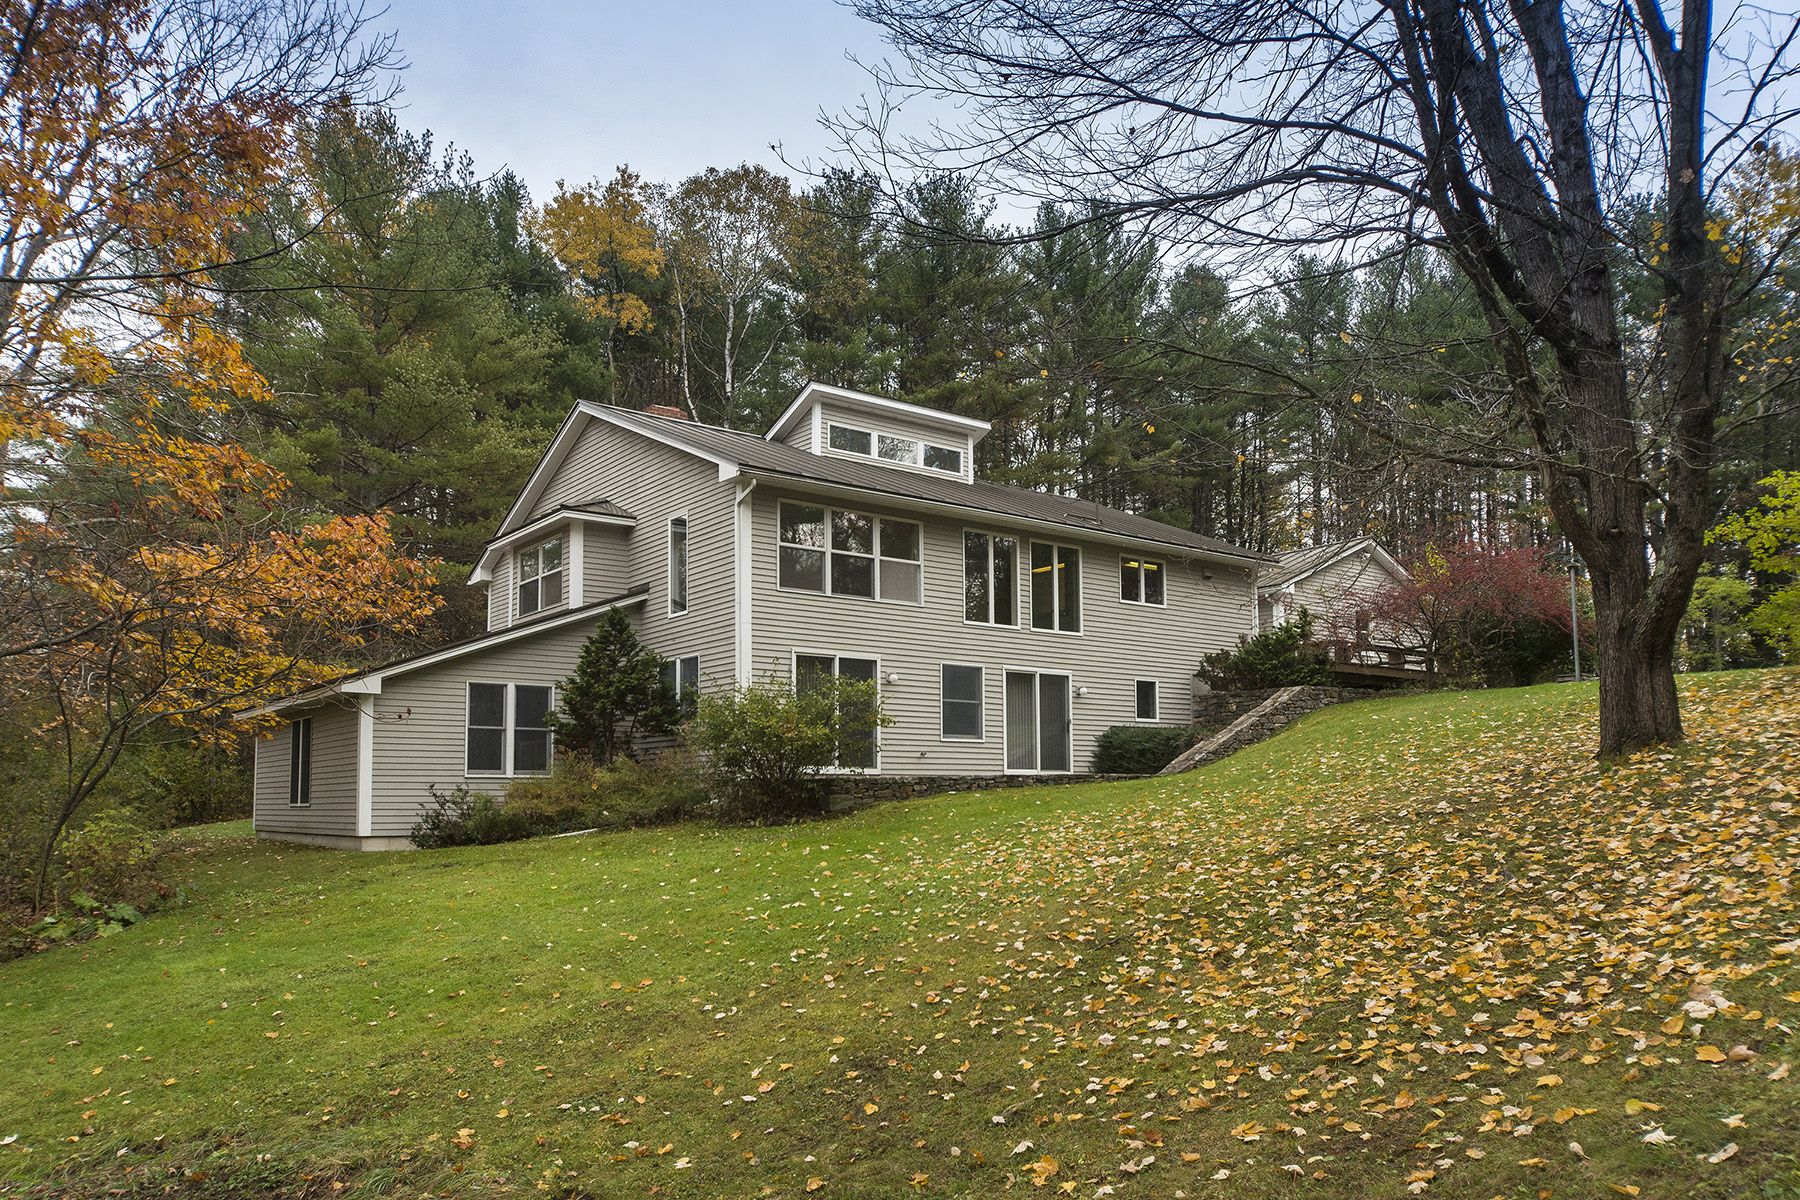 Single Family Home for Sale at 15 Frye Drive Cumberland, Maine 04021 United States